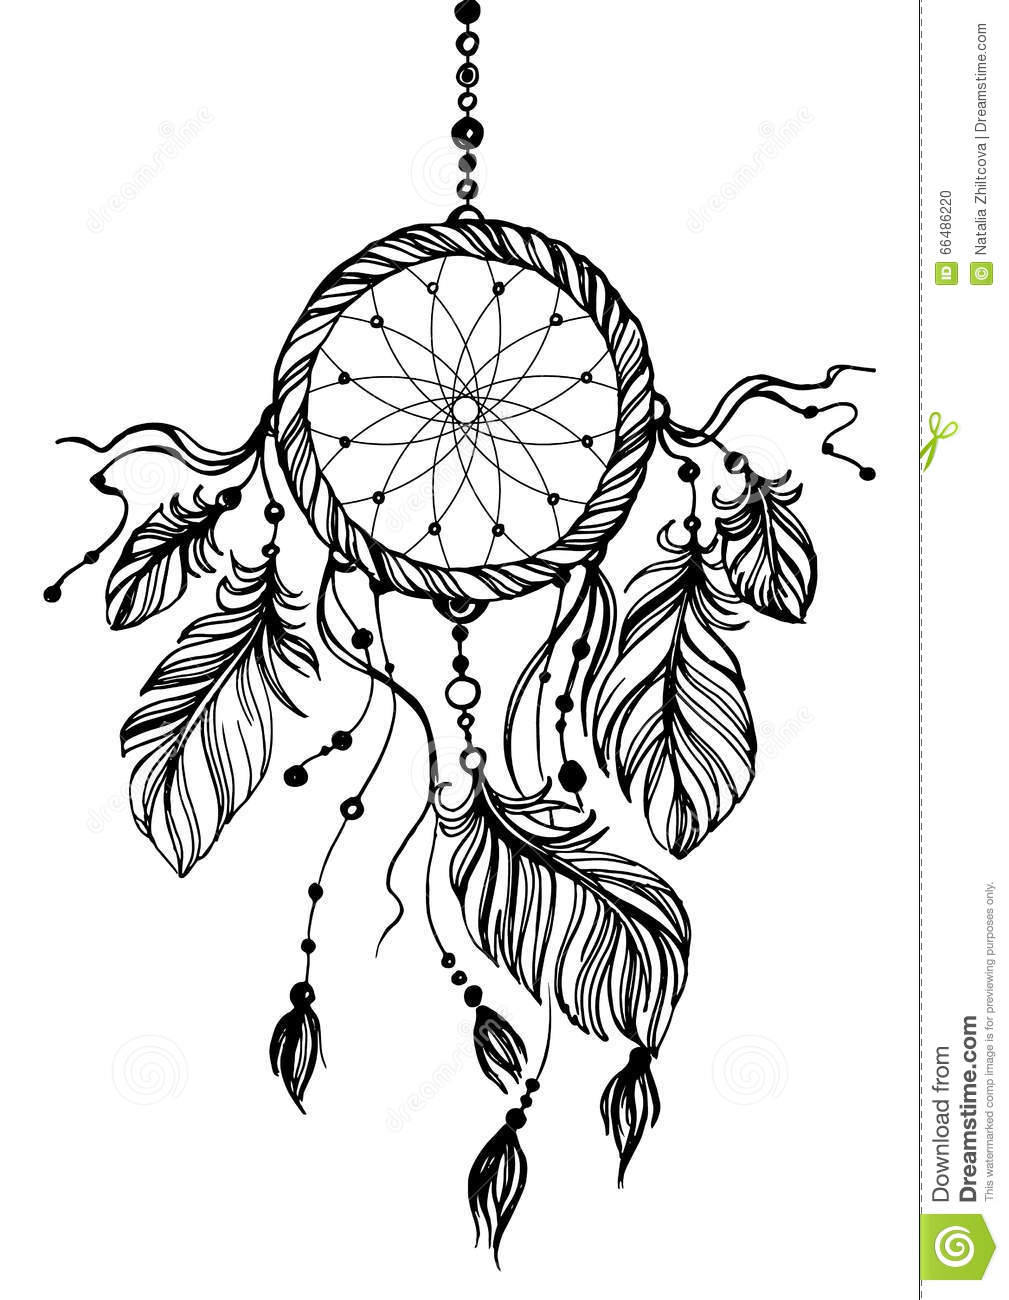 Simple Dreamcatcher Drawing Page For Kids